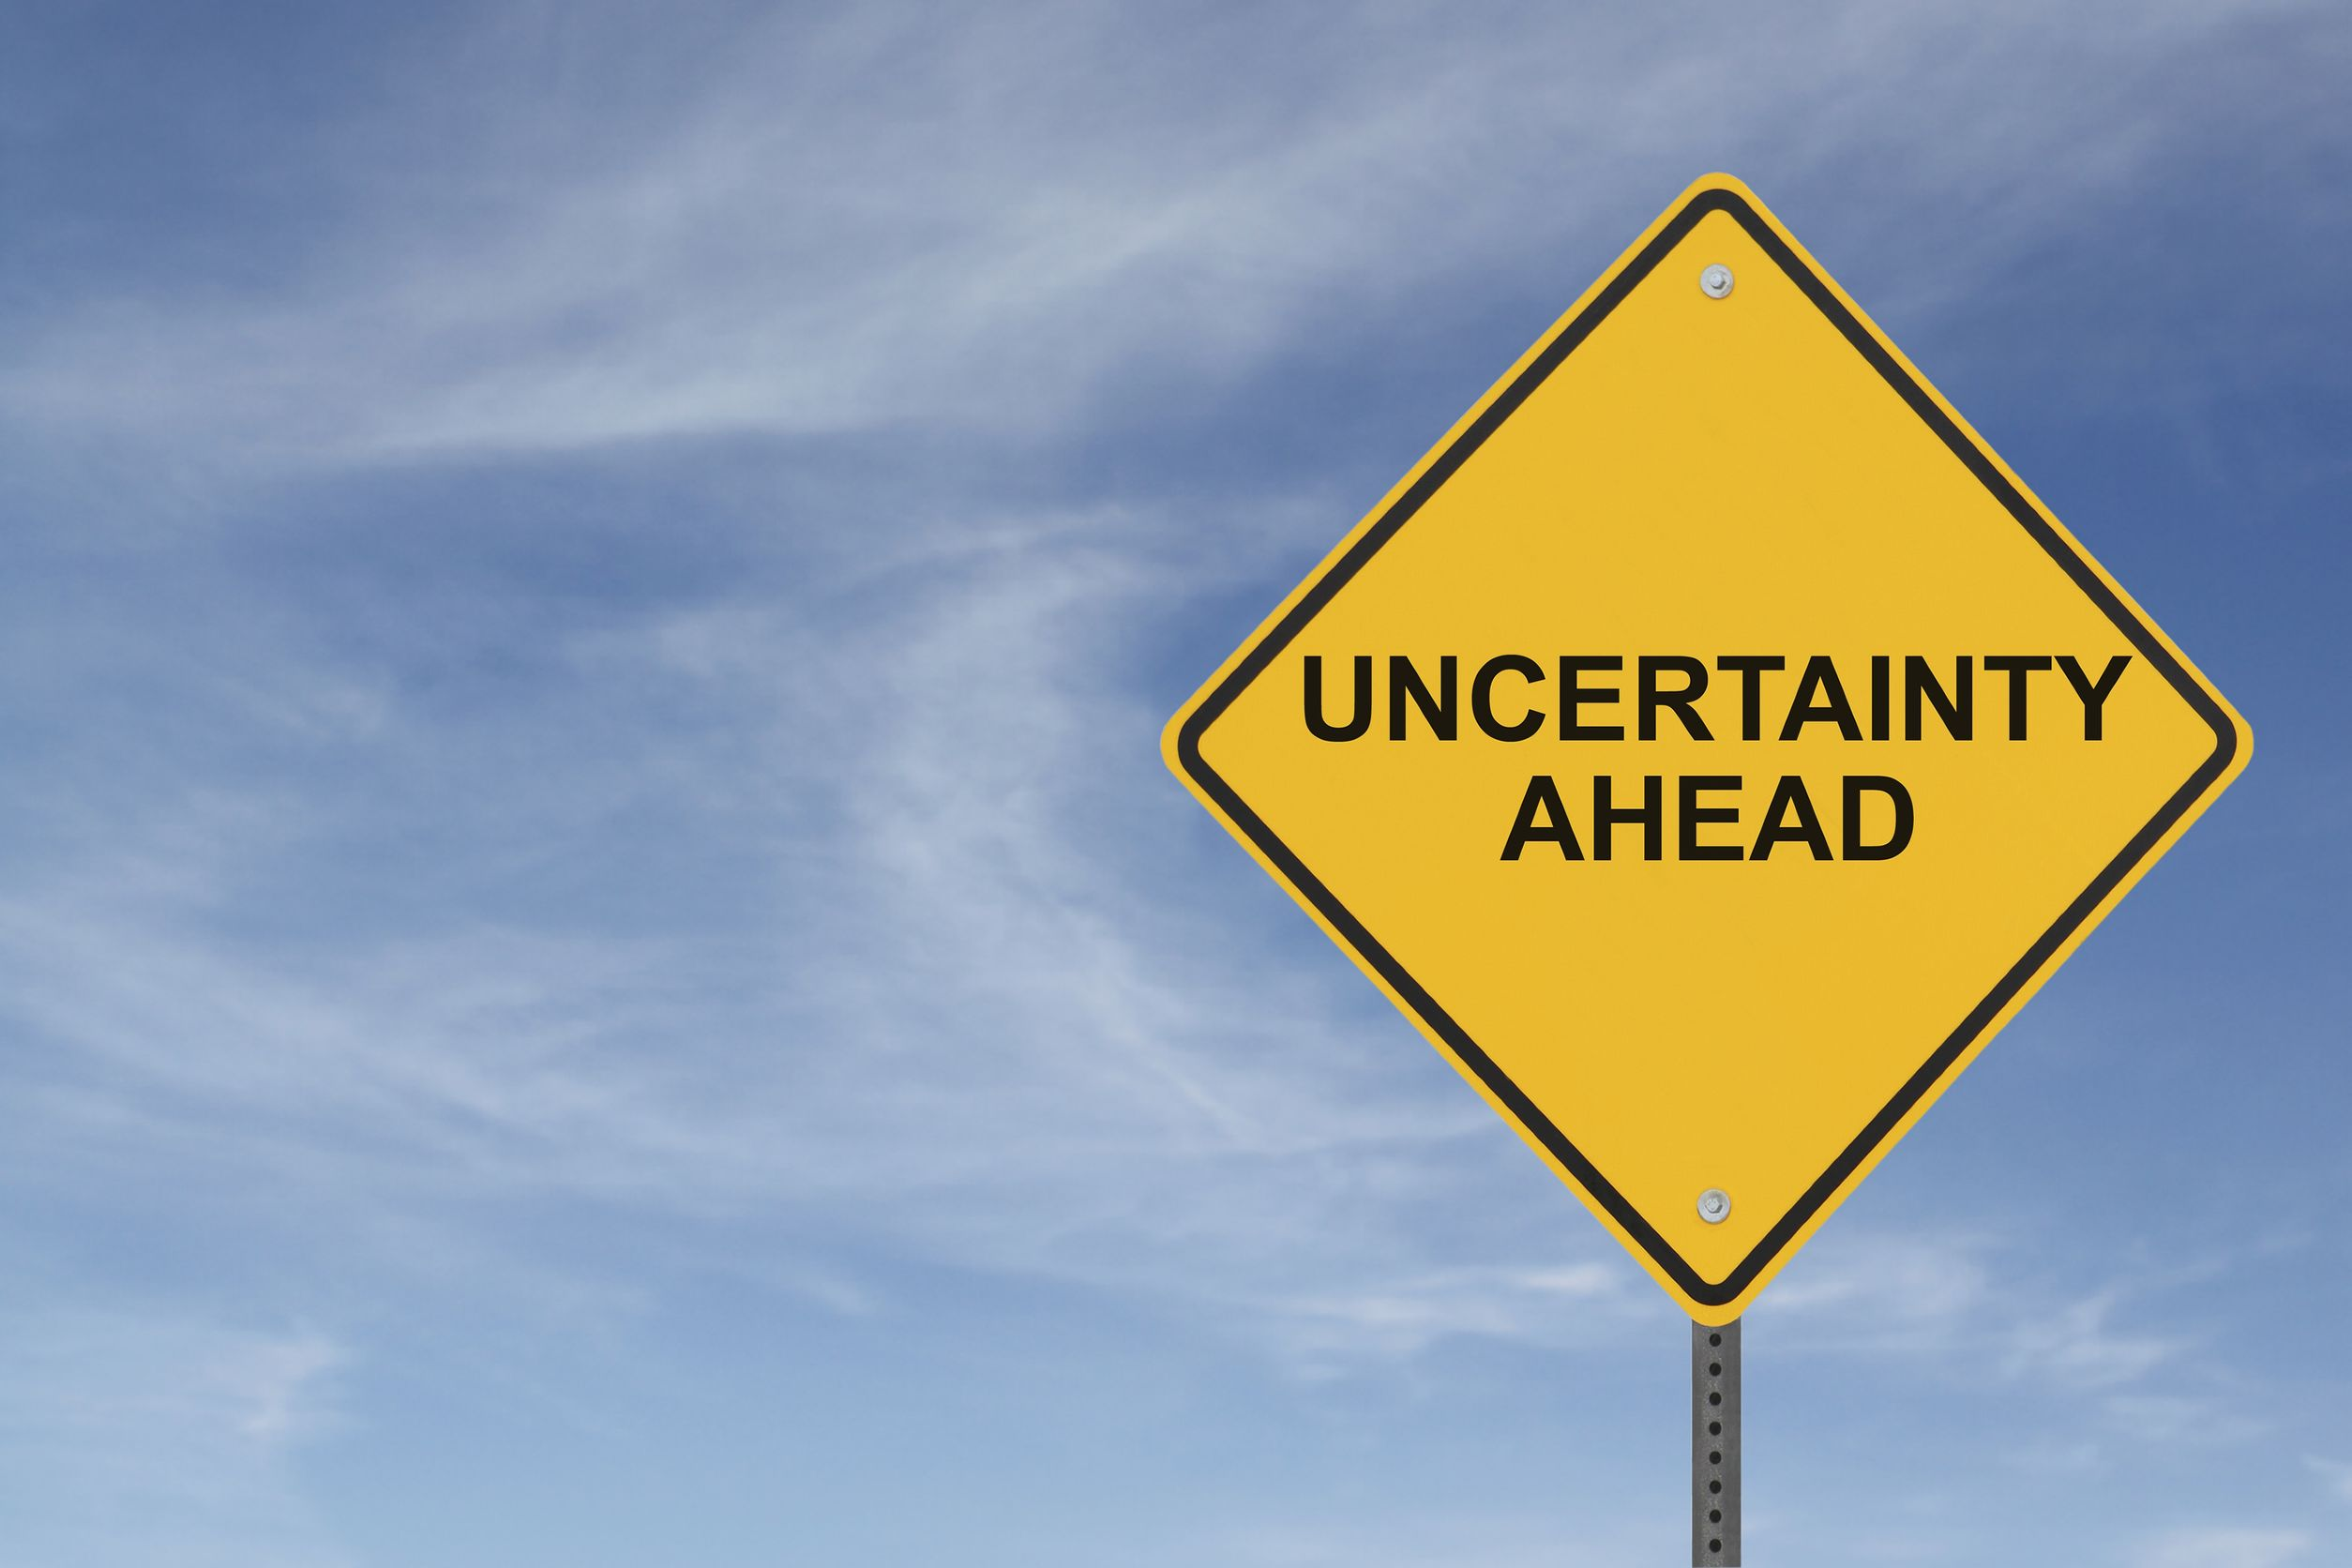 You can find peace in times of uncertainty. The stress of uncertainty poses problems, but you control the amount of peace you find in uncertainty. Here's how.